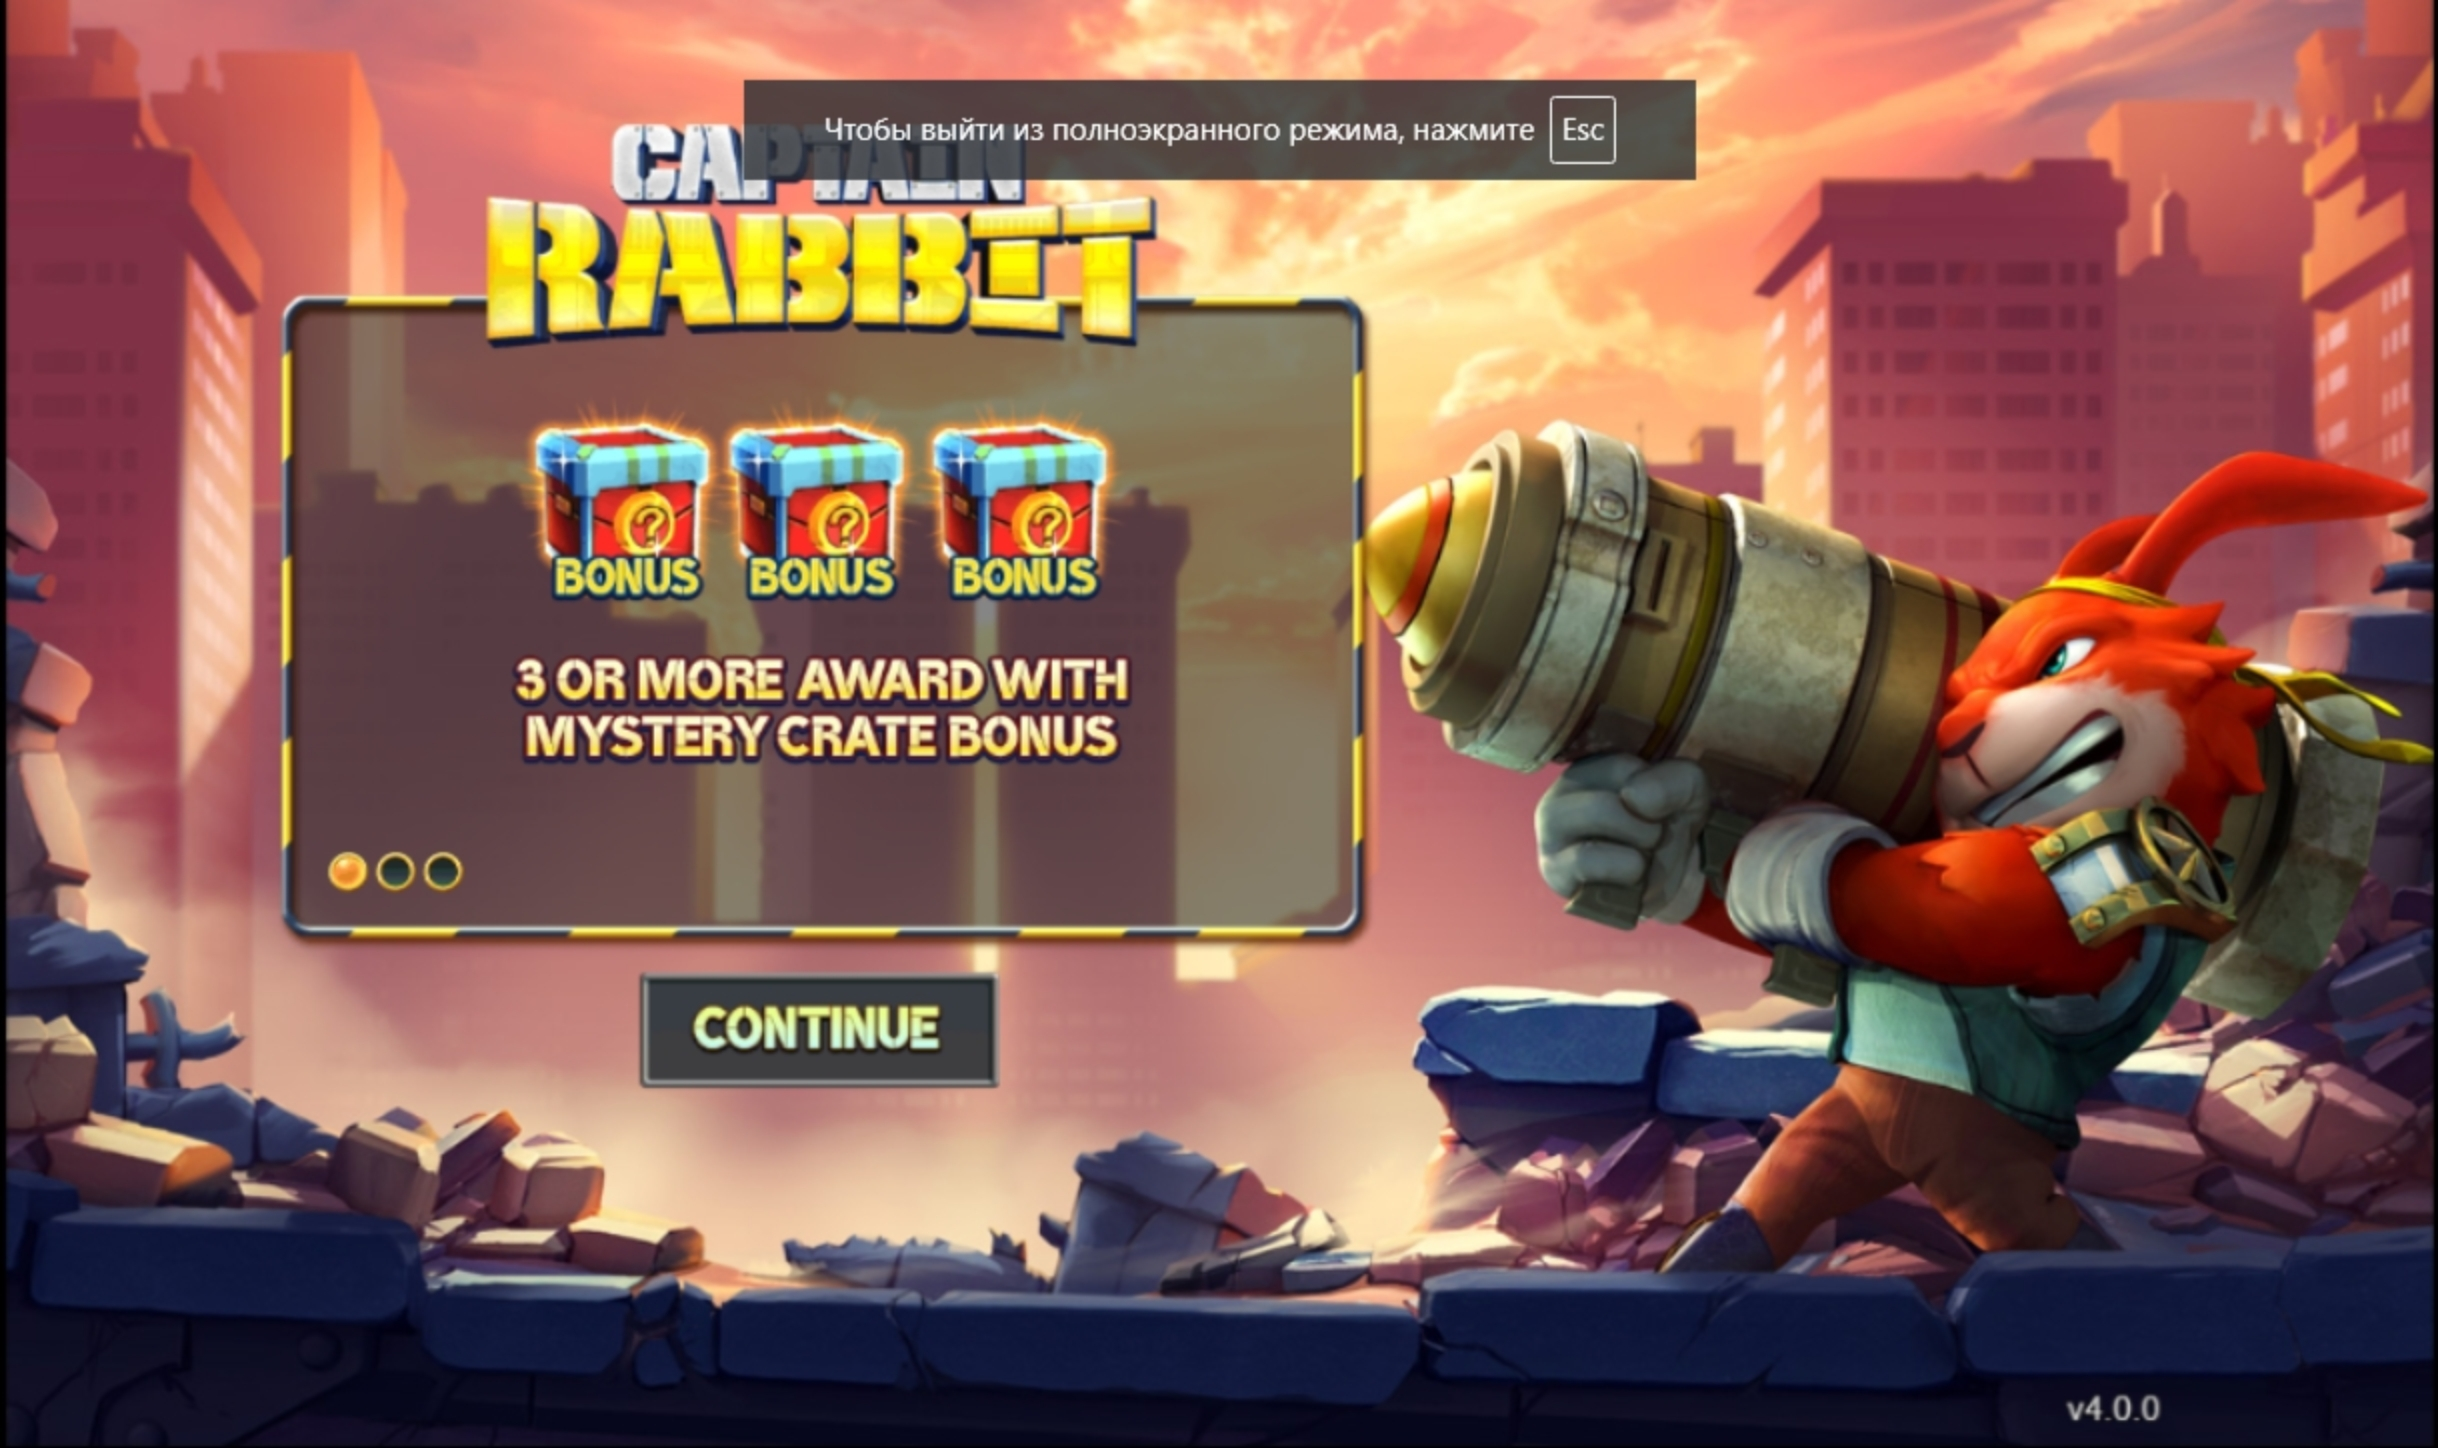 Play Captain Rabbit Free Casino Slot Game by Gameplay Interactive